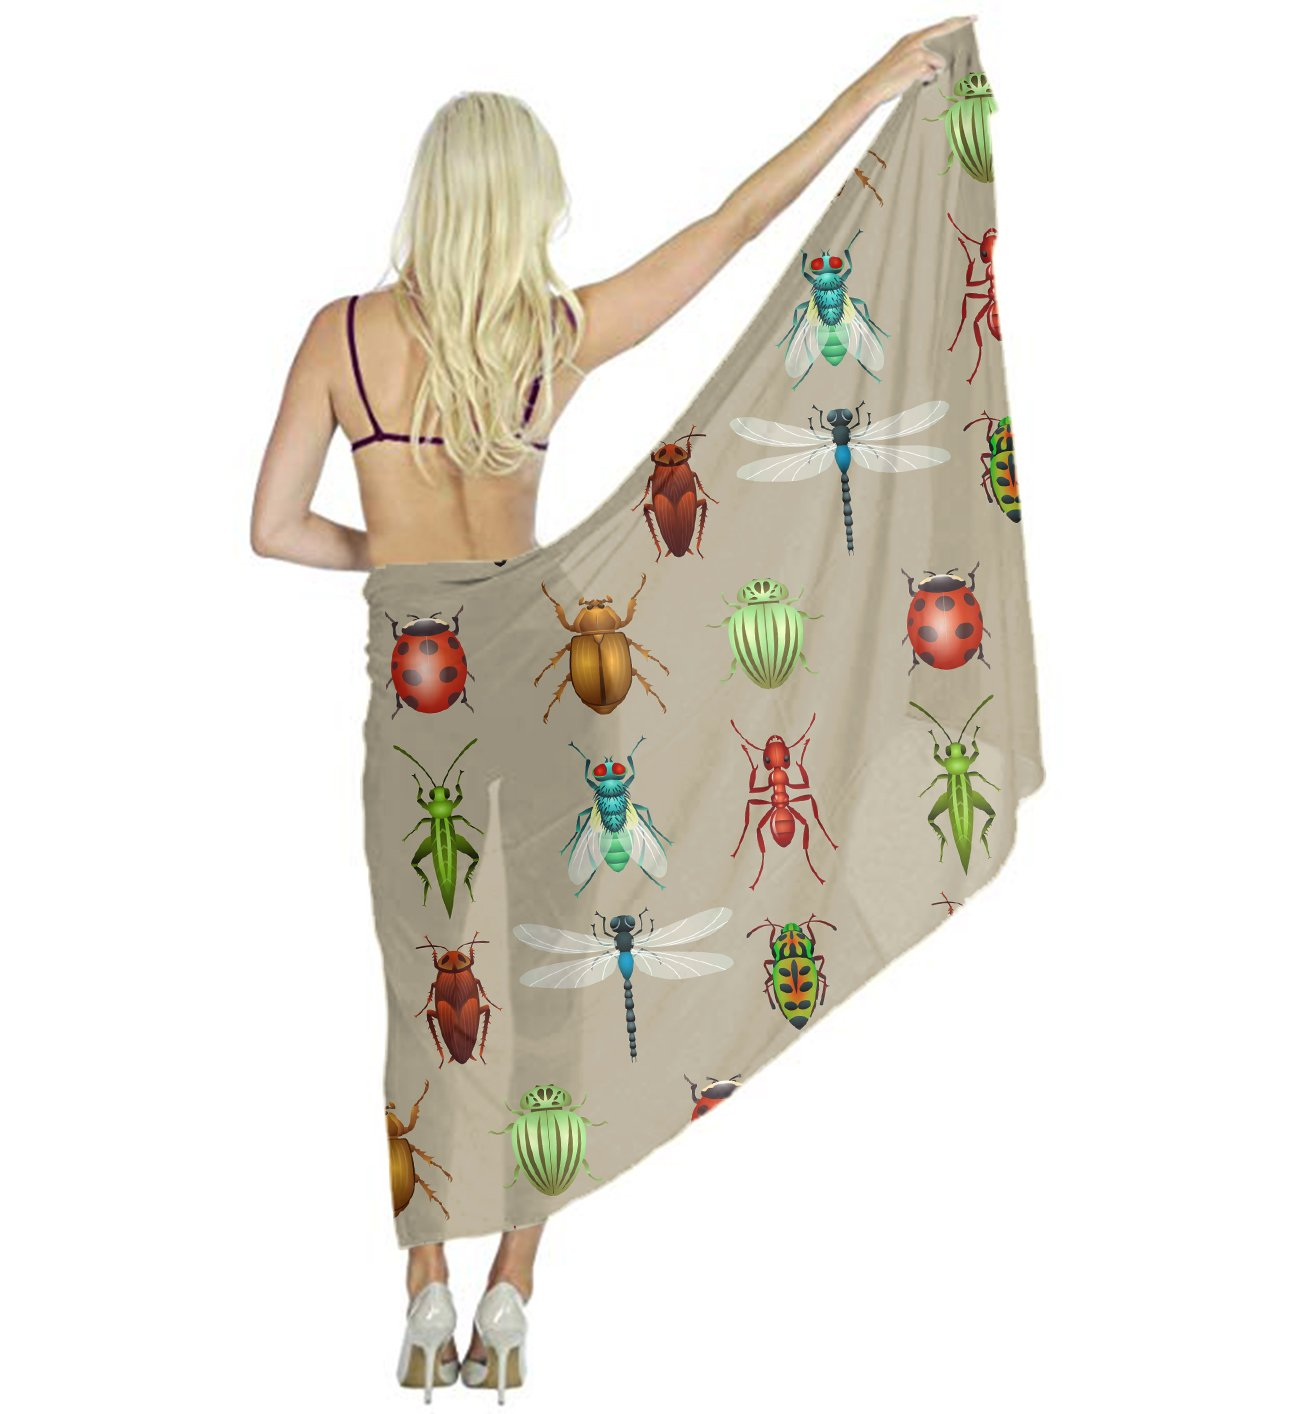 Women Neck Scarf Head Hair Insects Icon Shawl Wraps, 70.9 Inch x 31.5 Inch